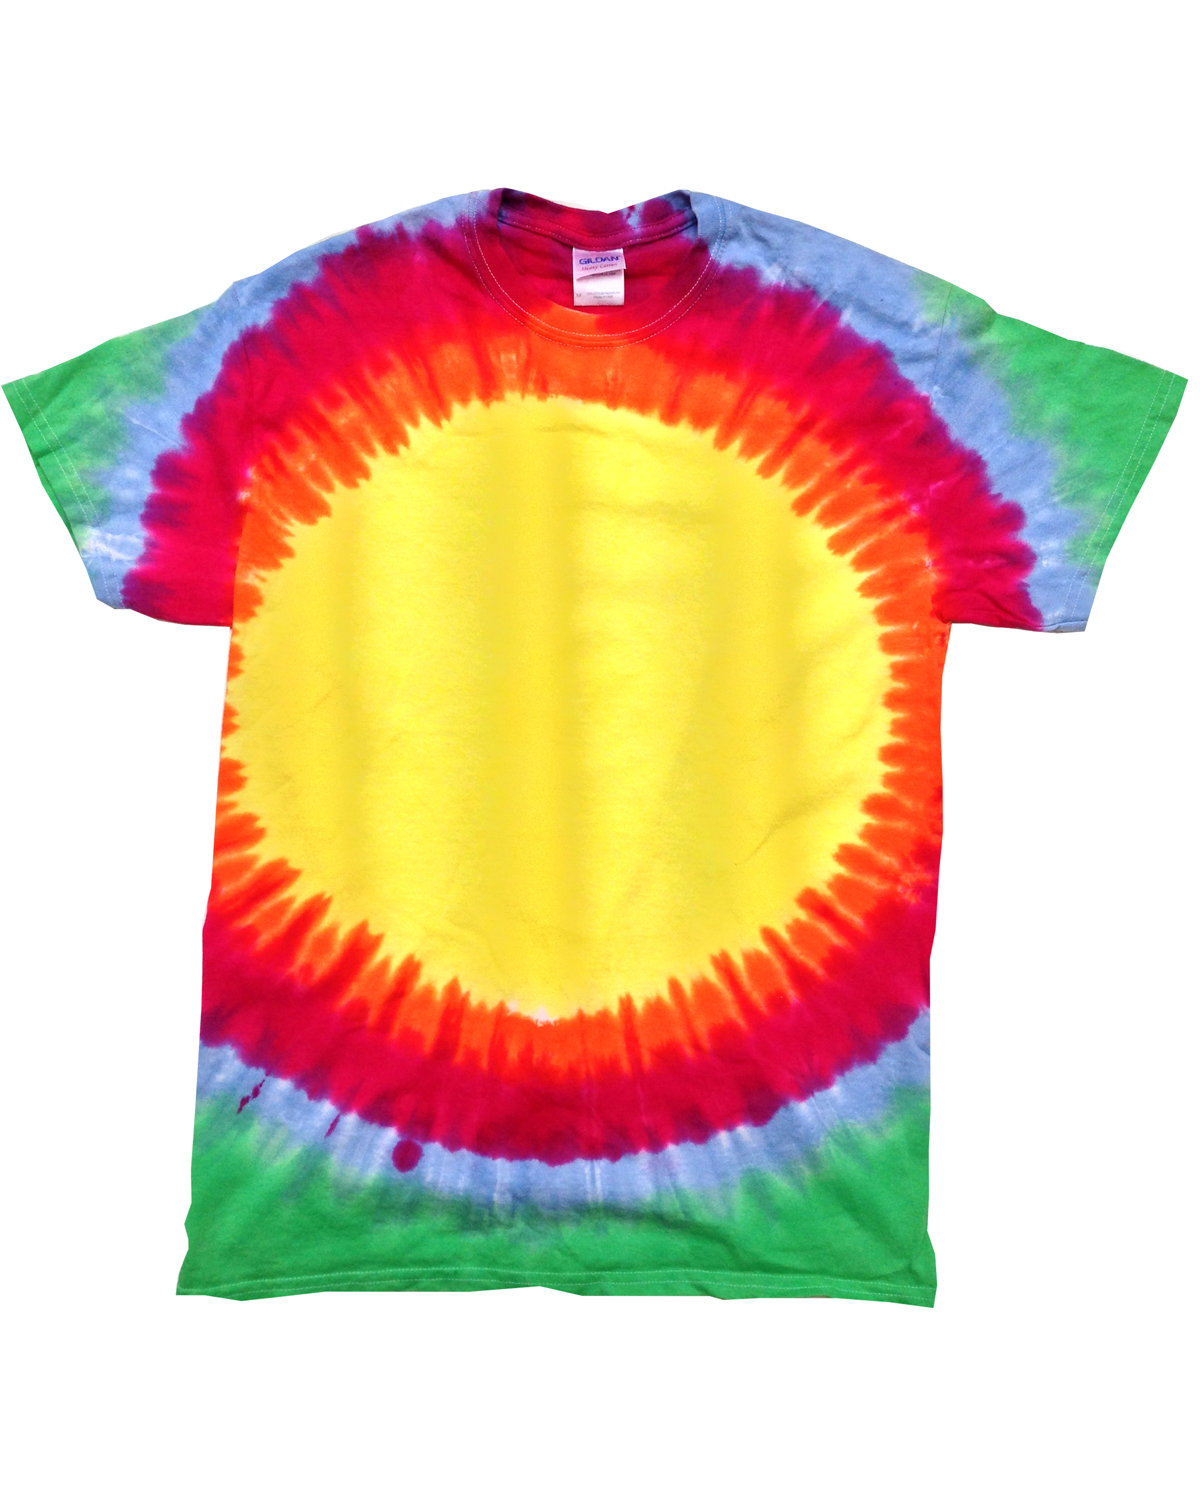 Tie-Dye Adult 5.4 oz., 100% Cotton T-Shirt SUNBURST RAINBOW